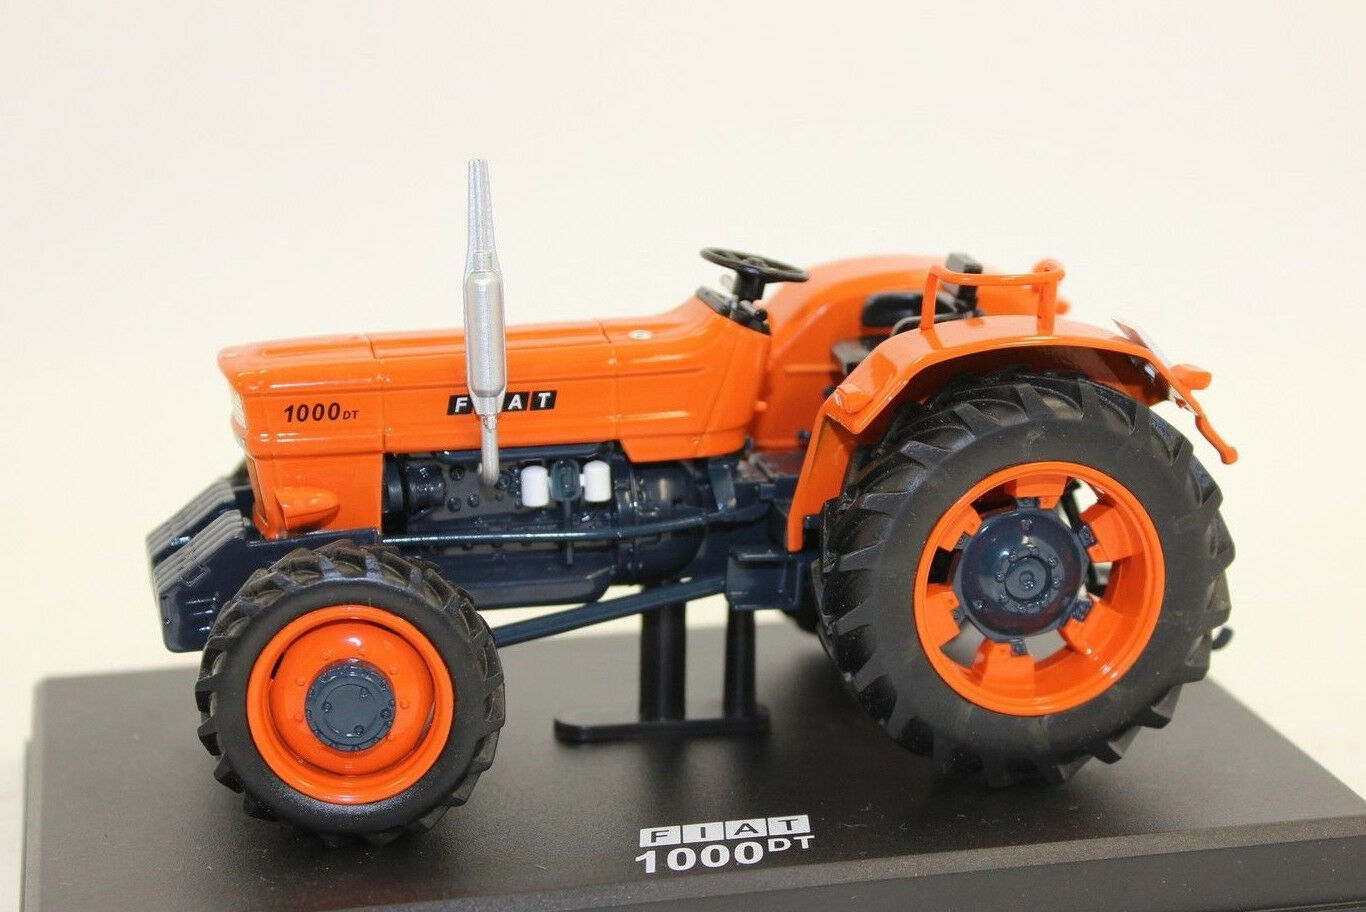 Replica Gri 051 Tractor Fiat 1000 DT with Driver 1 3 2 NEW BOXED